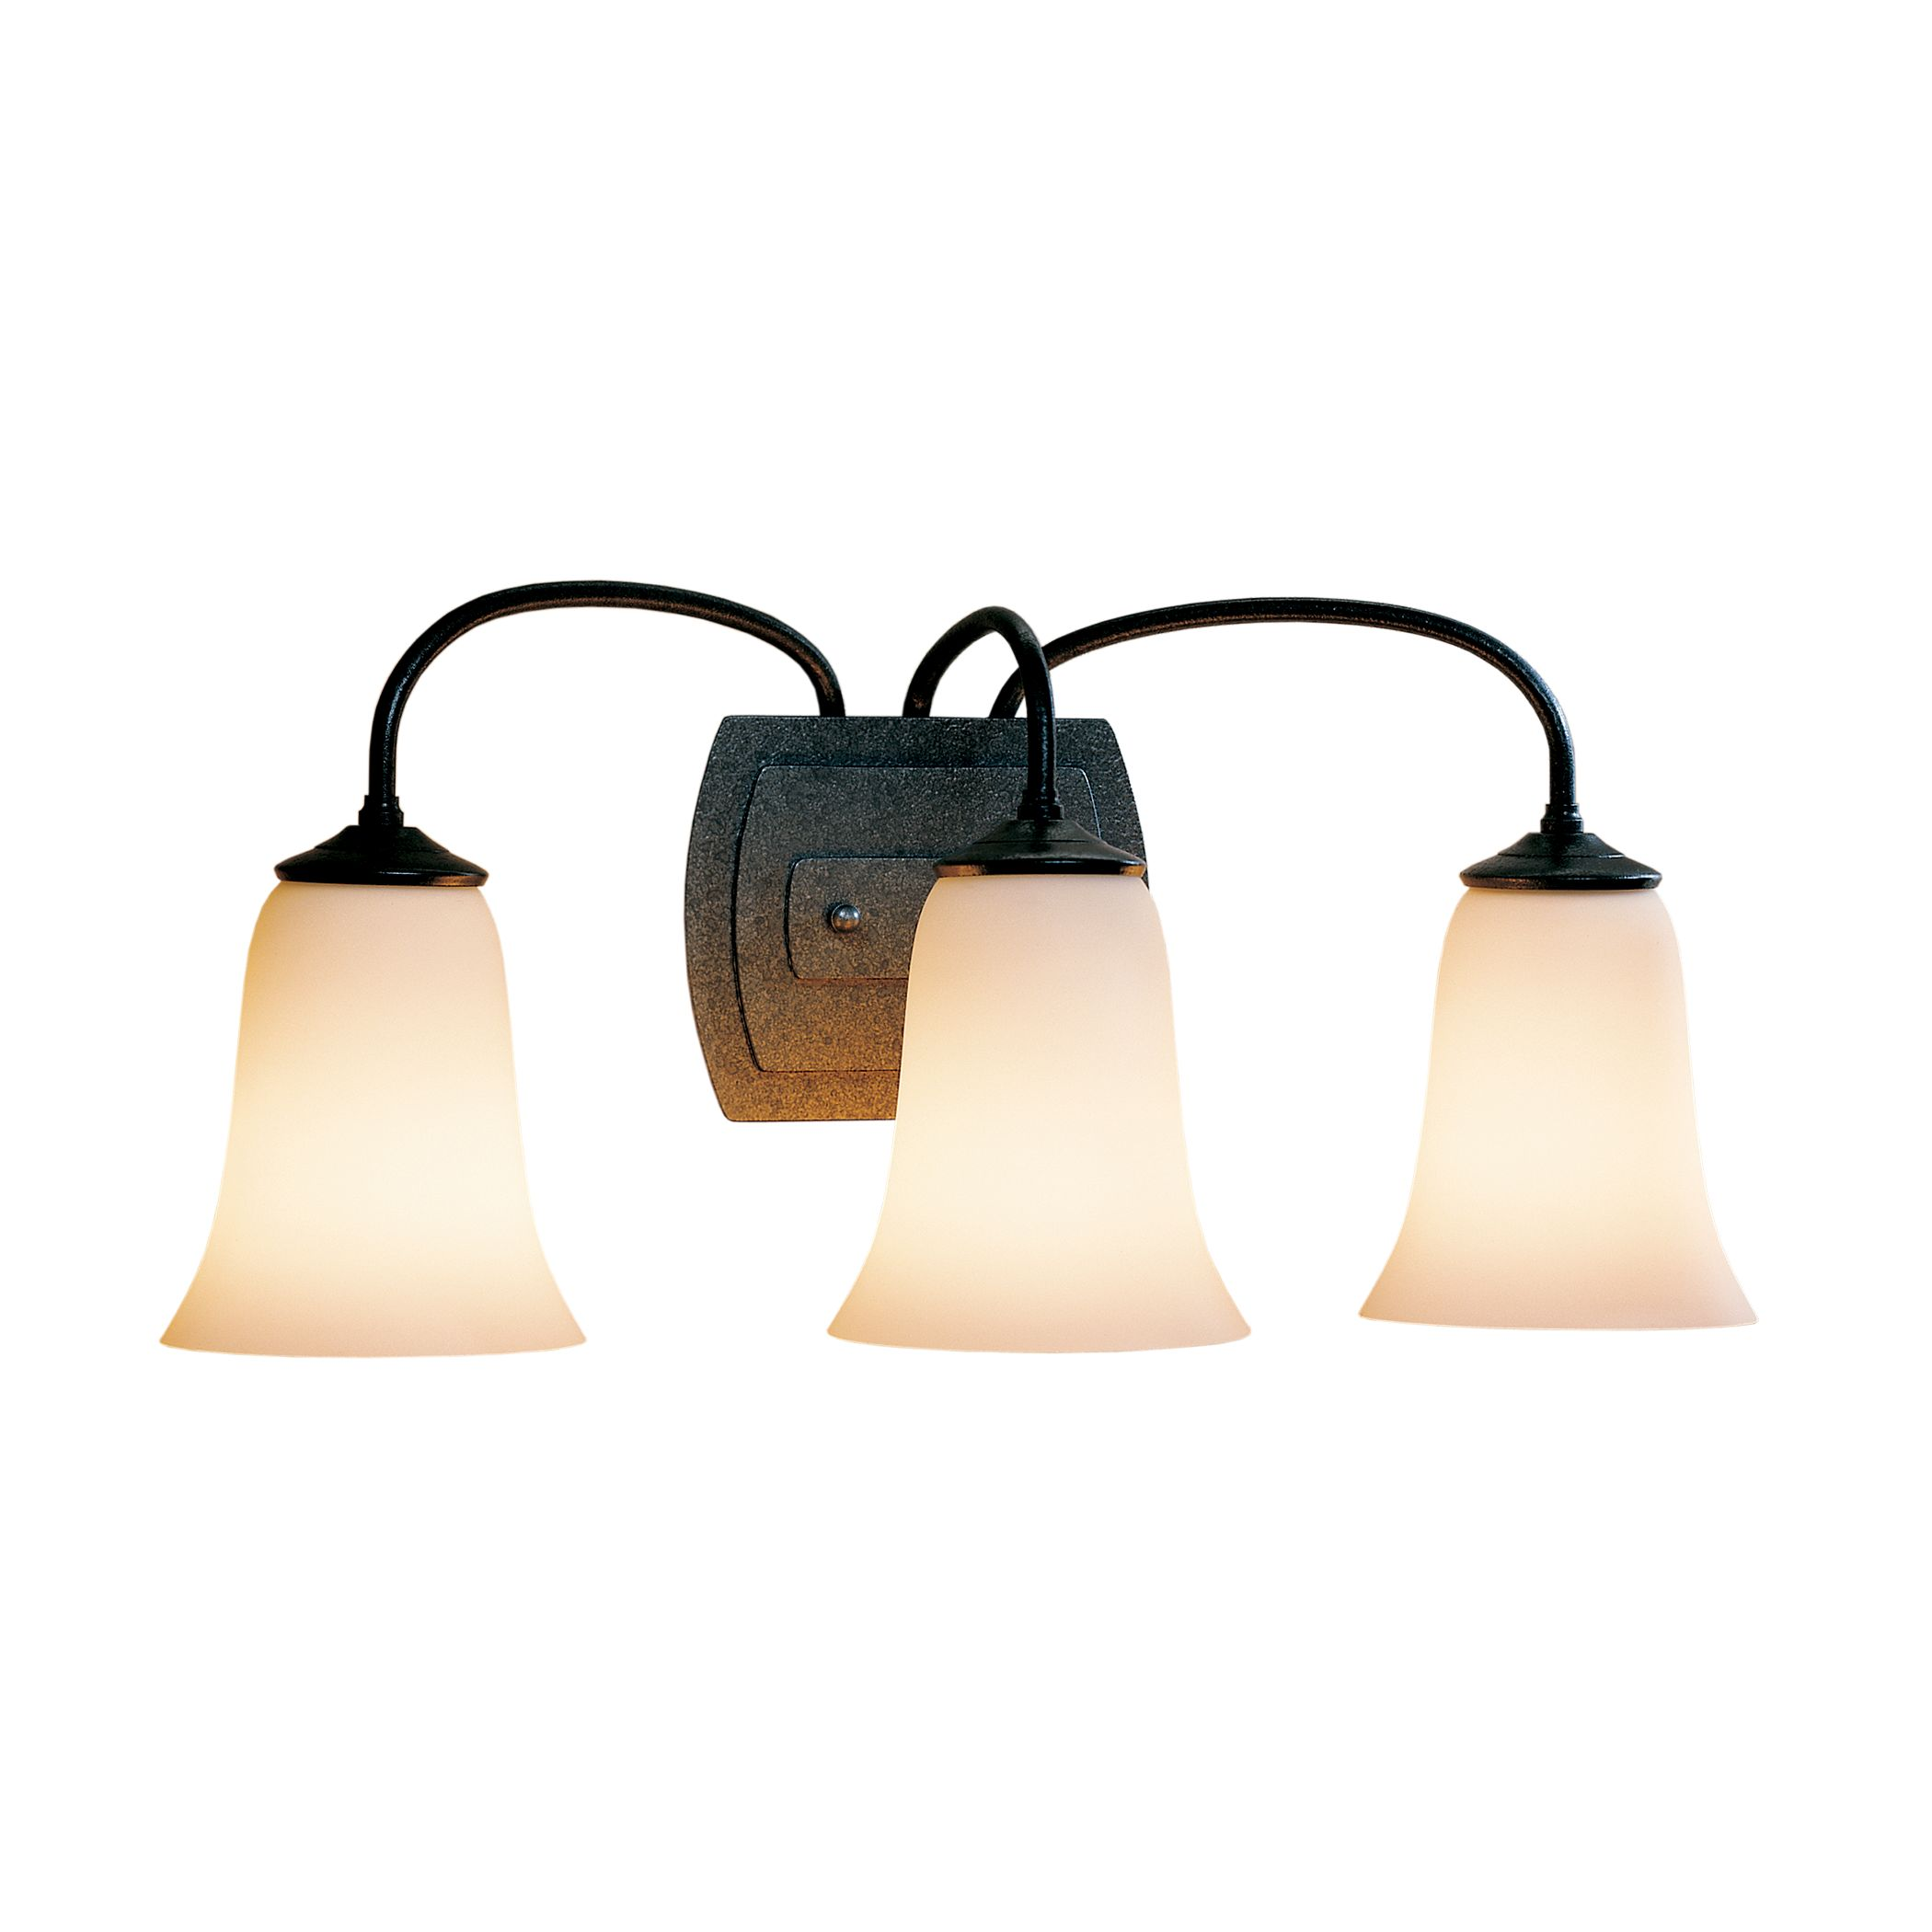 Thumbnail for Simple Lines 3 Light Sconce